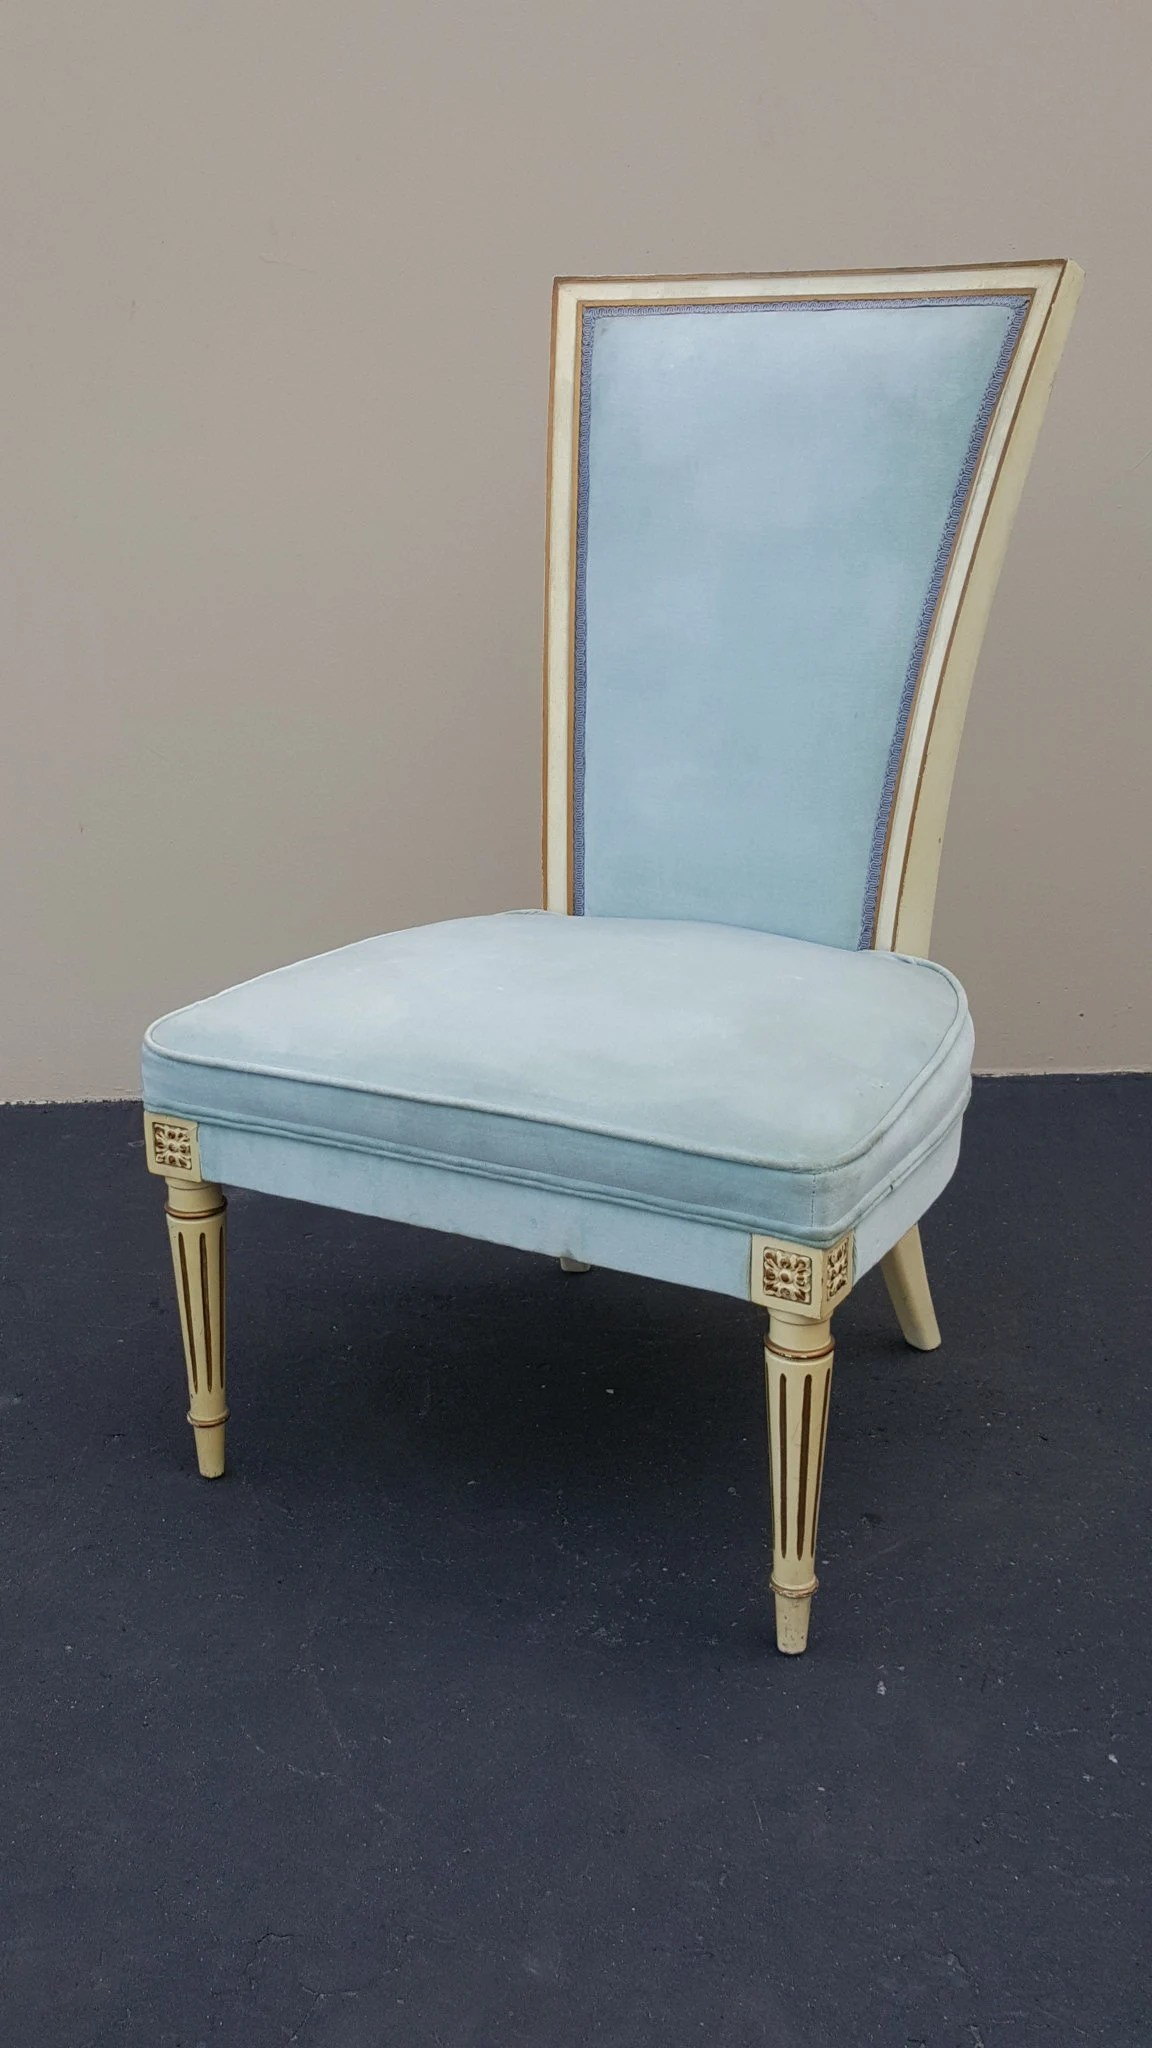 Velvet Slipper Chair Hollywood Regency Slipper Chair Vintage Italian Slipper Chair Boudoir Chair Pale Blue Velvet Chair Antique Gold Accent Excellent Condition